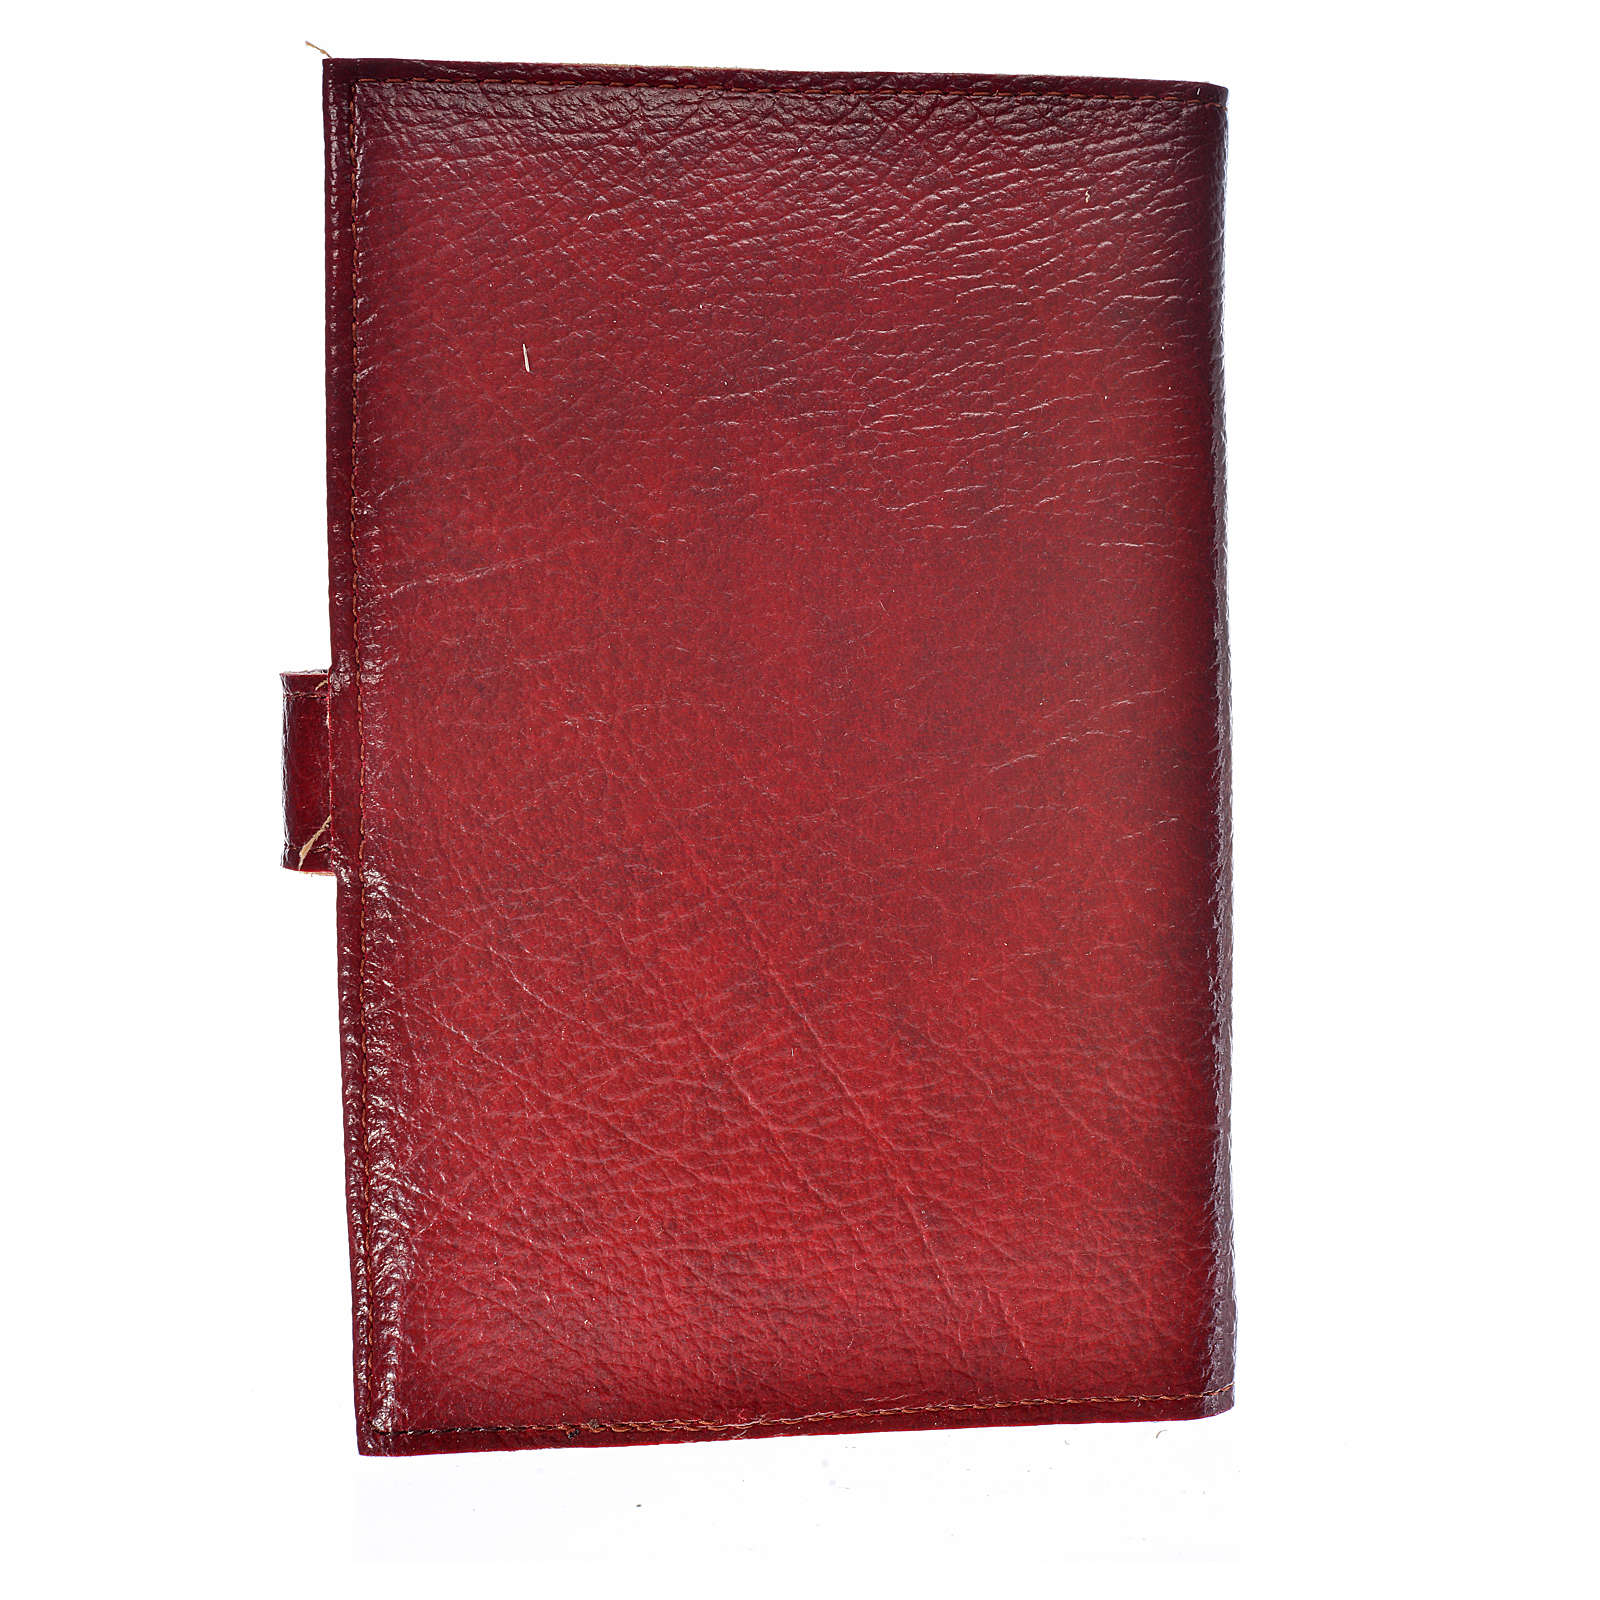 Leather imitation Ordinary Time cover burgundy 4